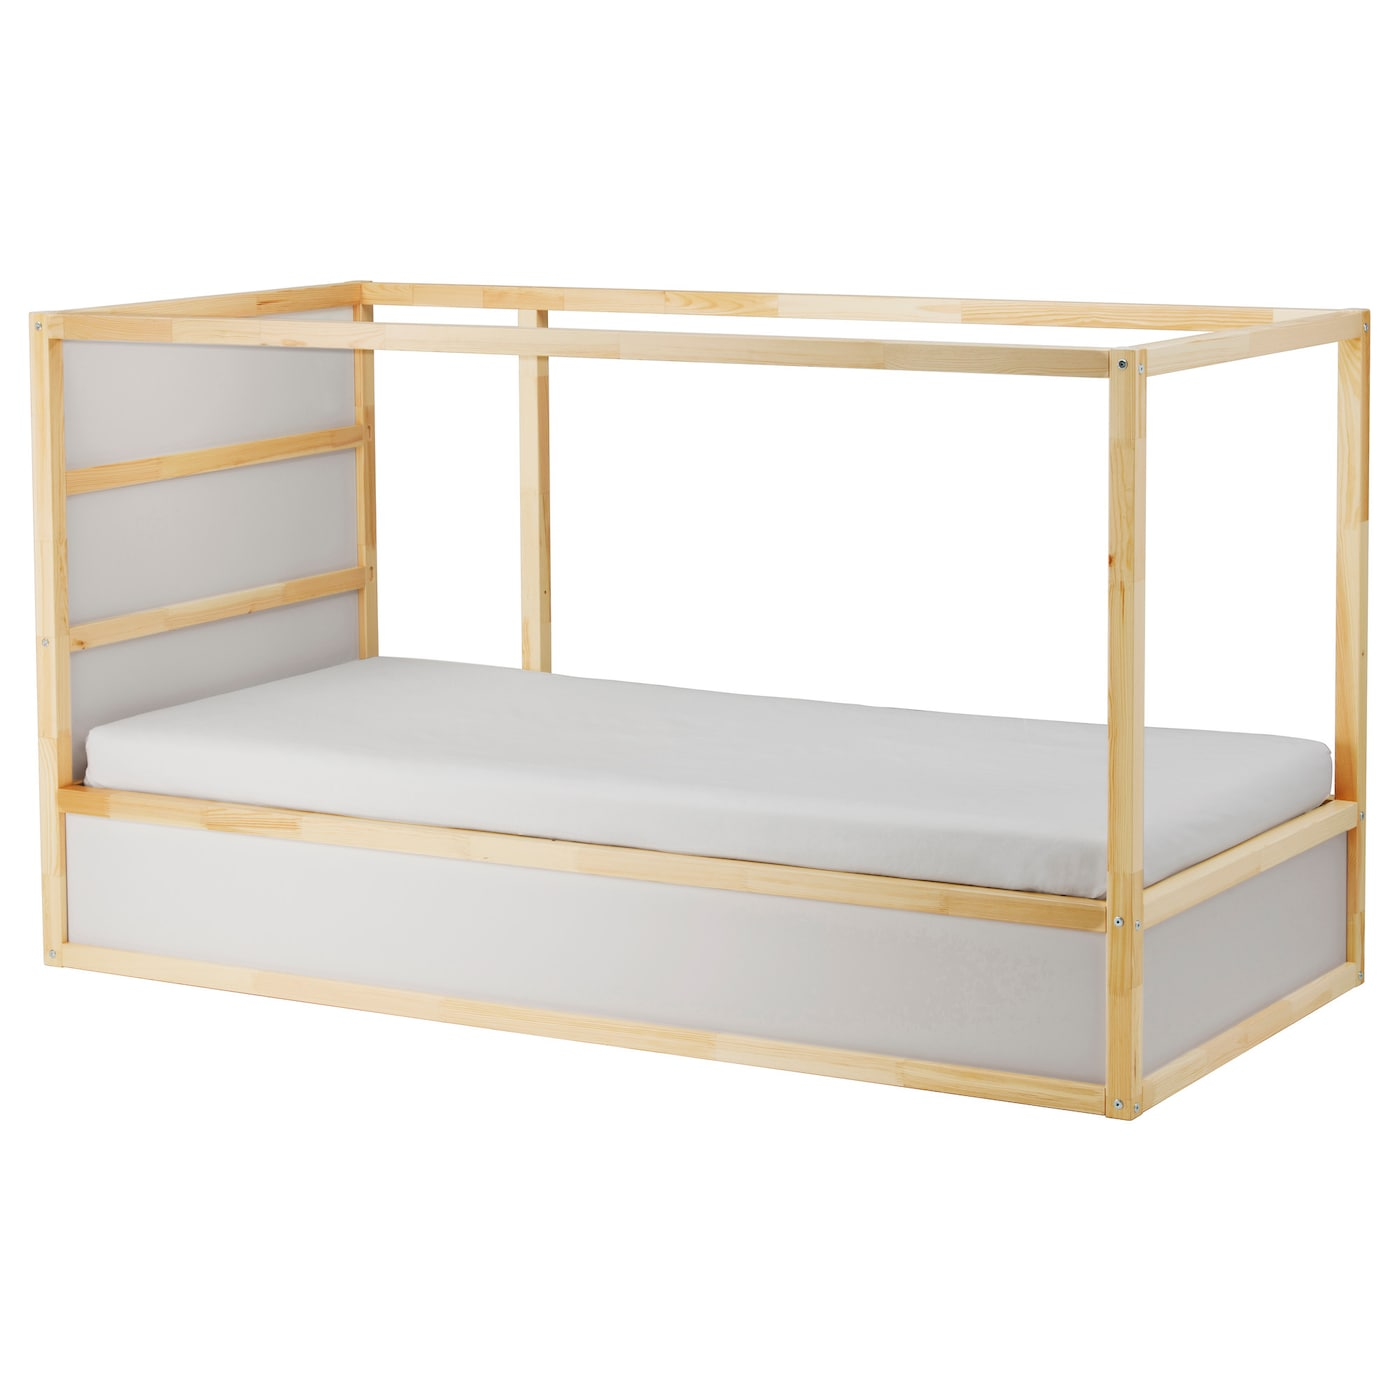 IKEA KURA reversible bed Turned upside down the bed quickly converts from a low to a high bed.